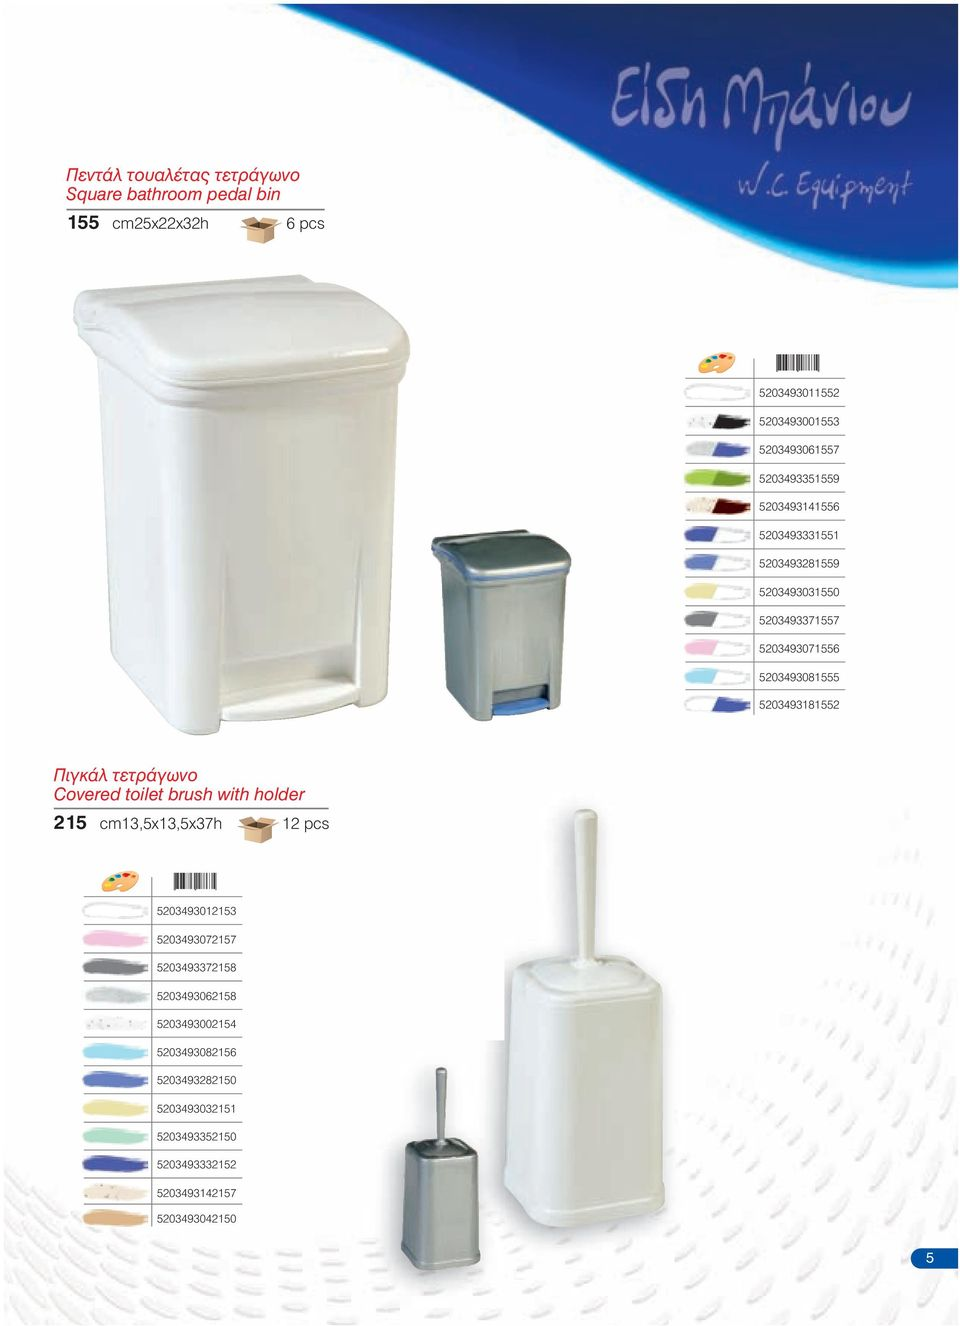 5203493181552 Πιγκάλ τετράγωνο Covered toilet brush with holder 215 cm13,5x13,5x37h 12 pcs 5203493012153 5203493072157